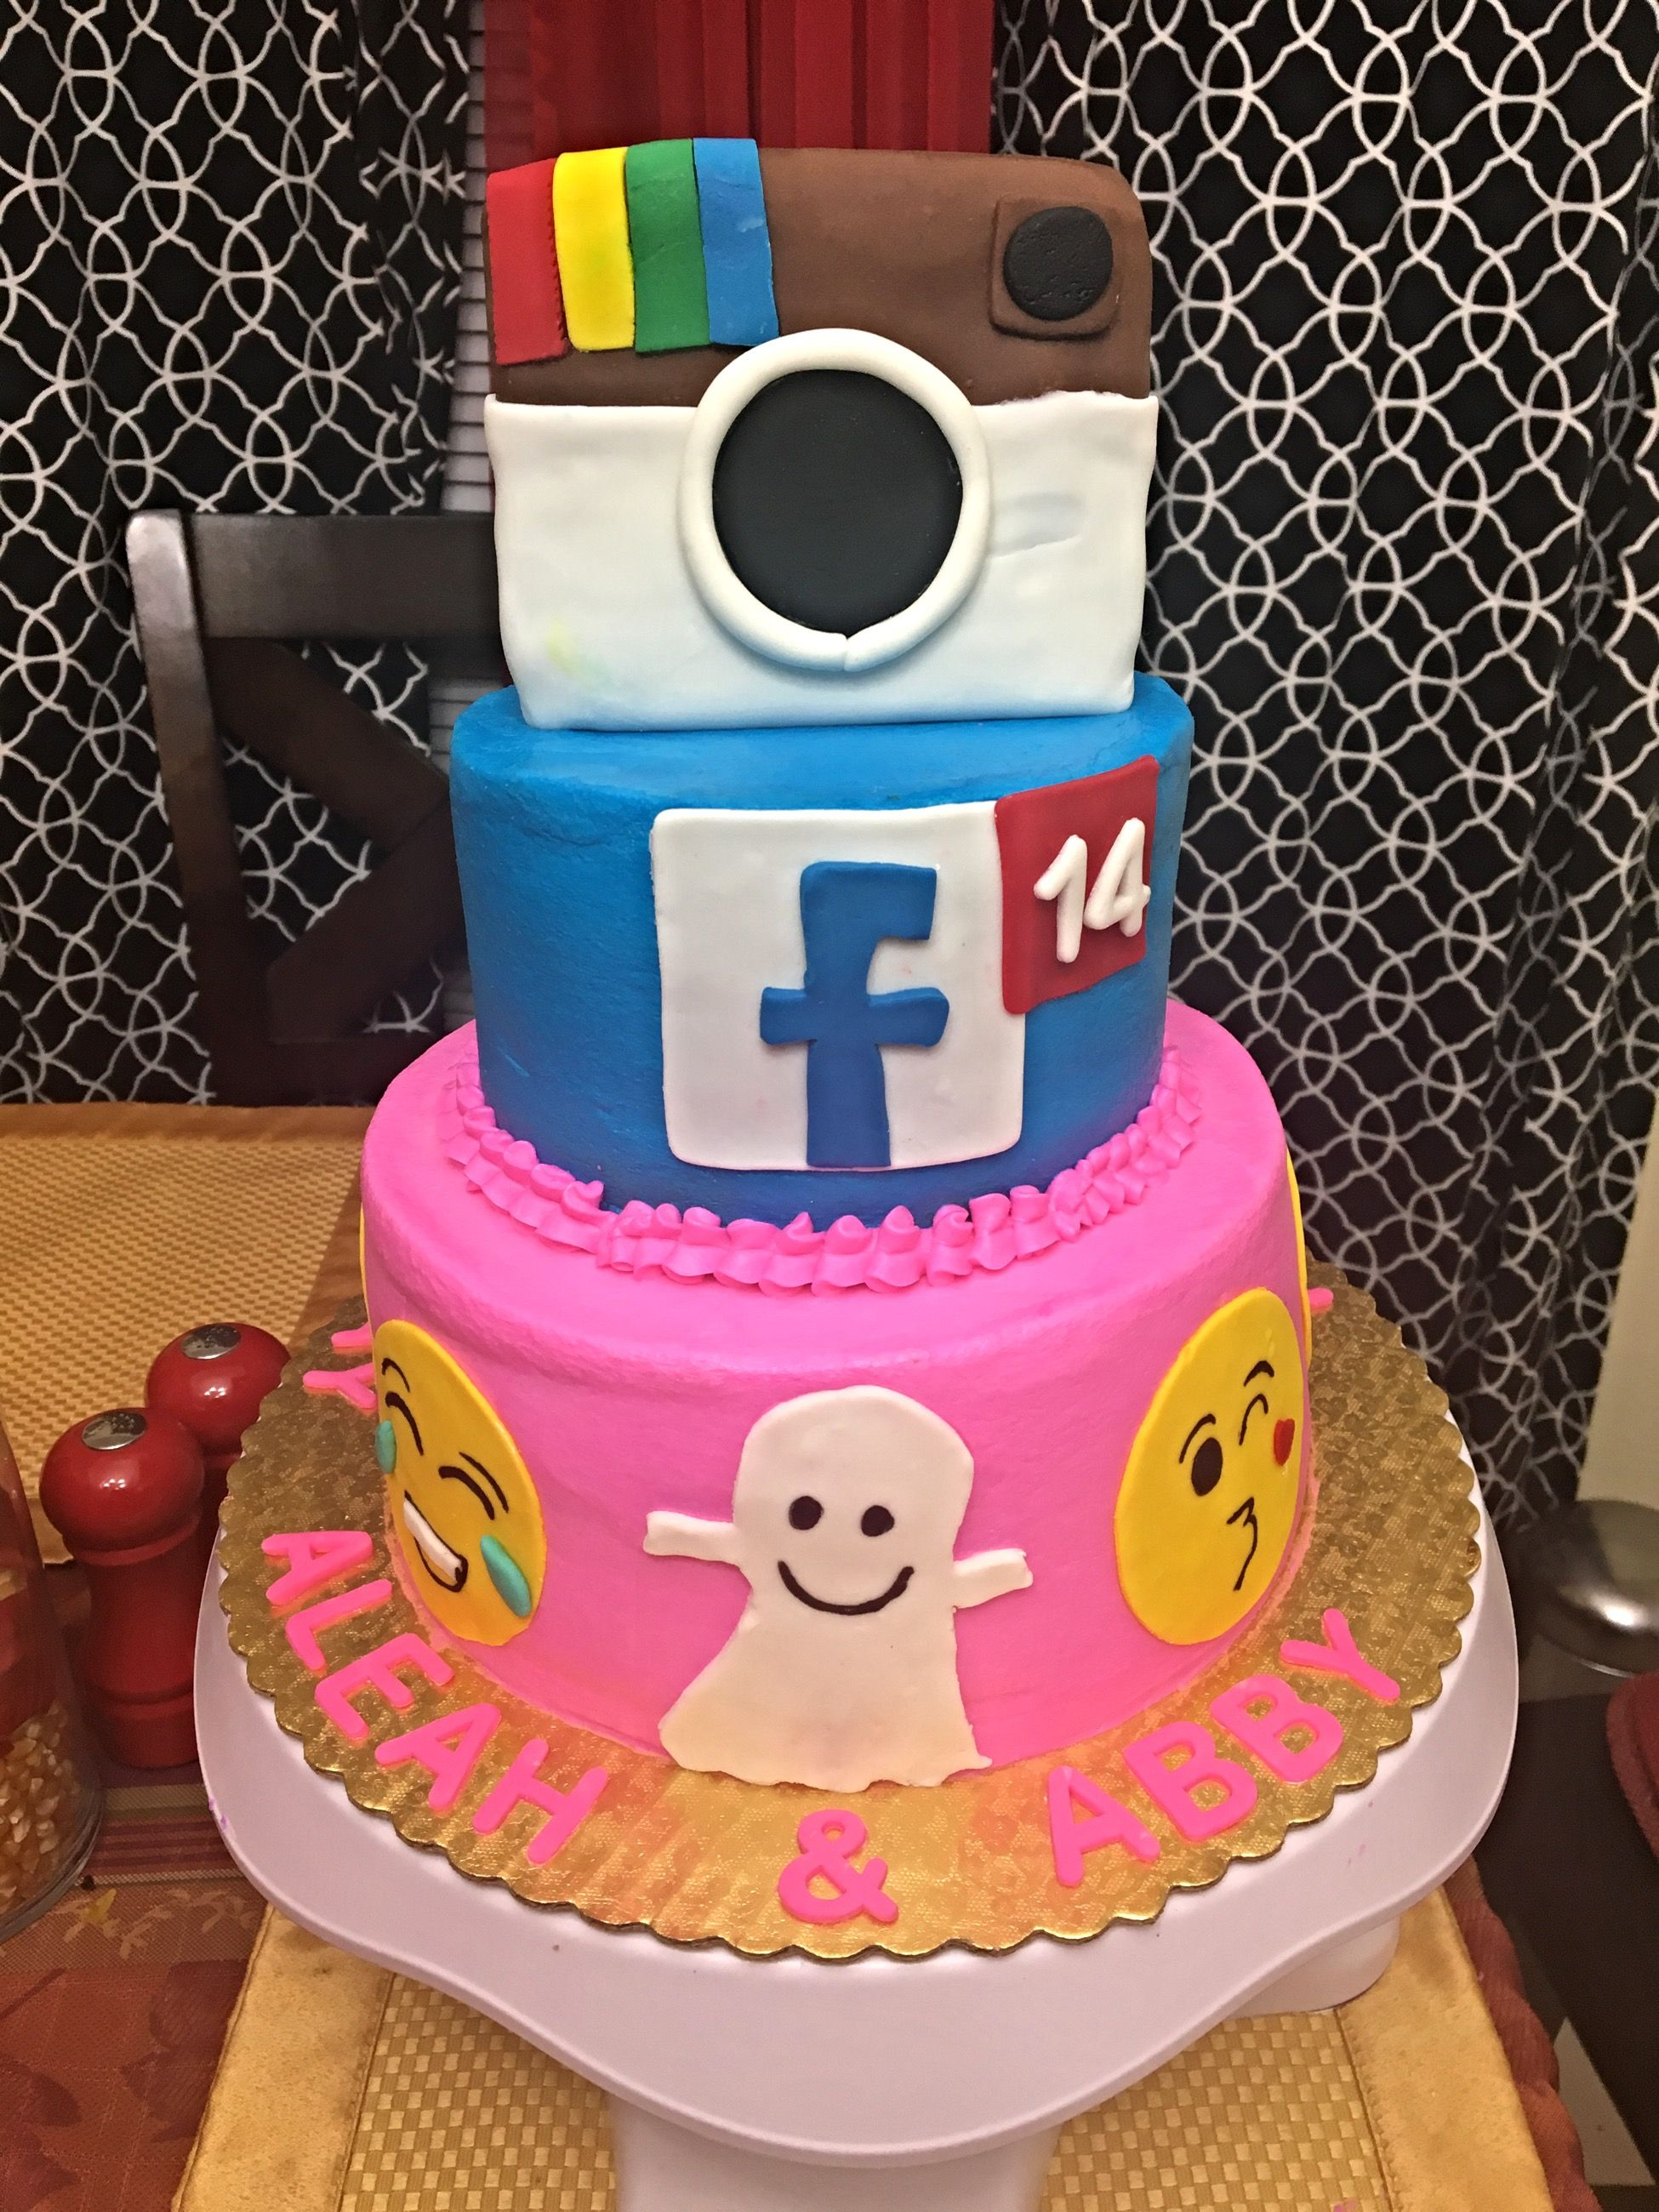 List Of Synonyms And Antonyms Of The Word Instagram Birthday Cakes